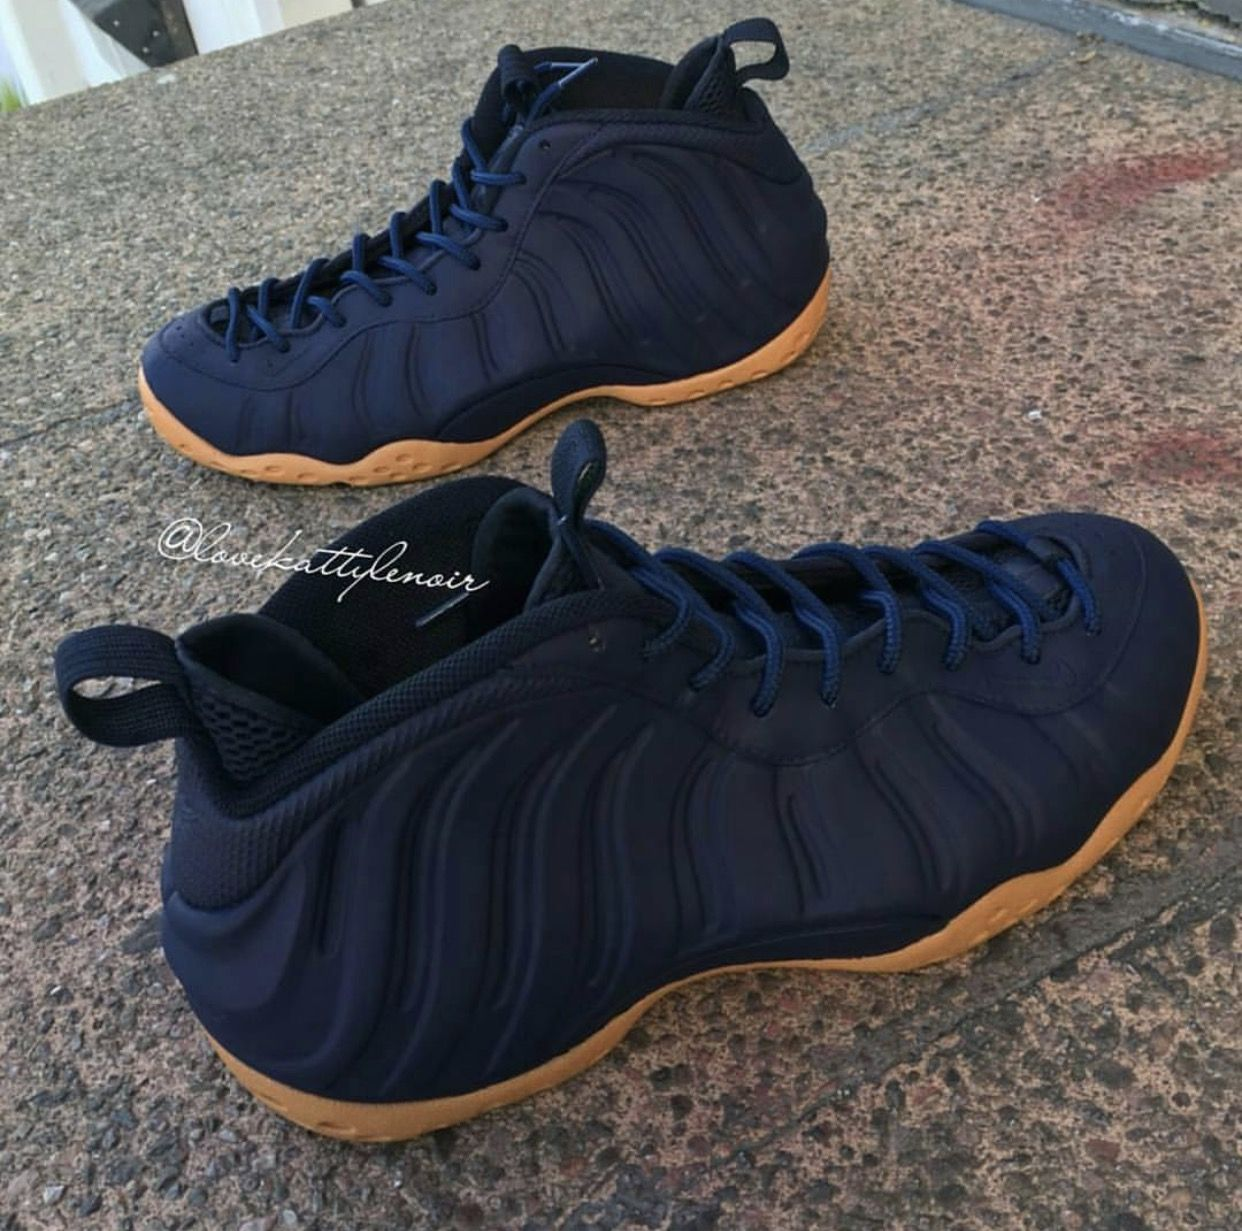 classic fit 6ac5a 30ac2 Foamposite Night Blue/ peanut butter bottle. | Shoes in 2019 ...